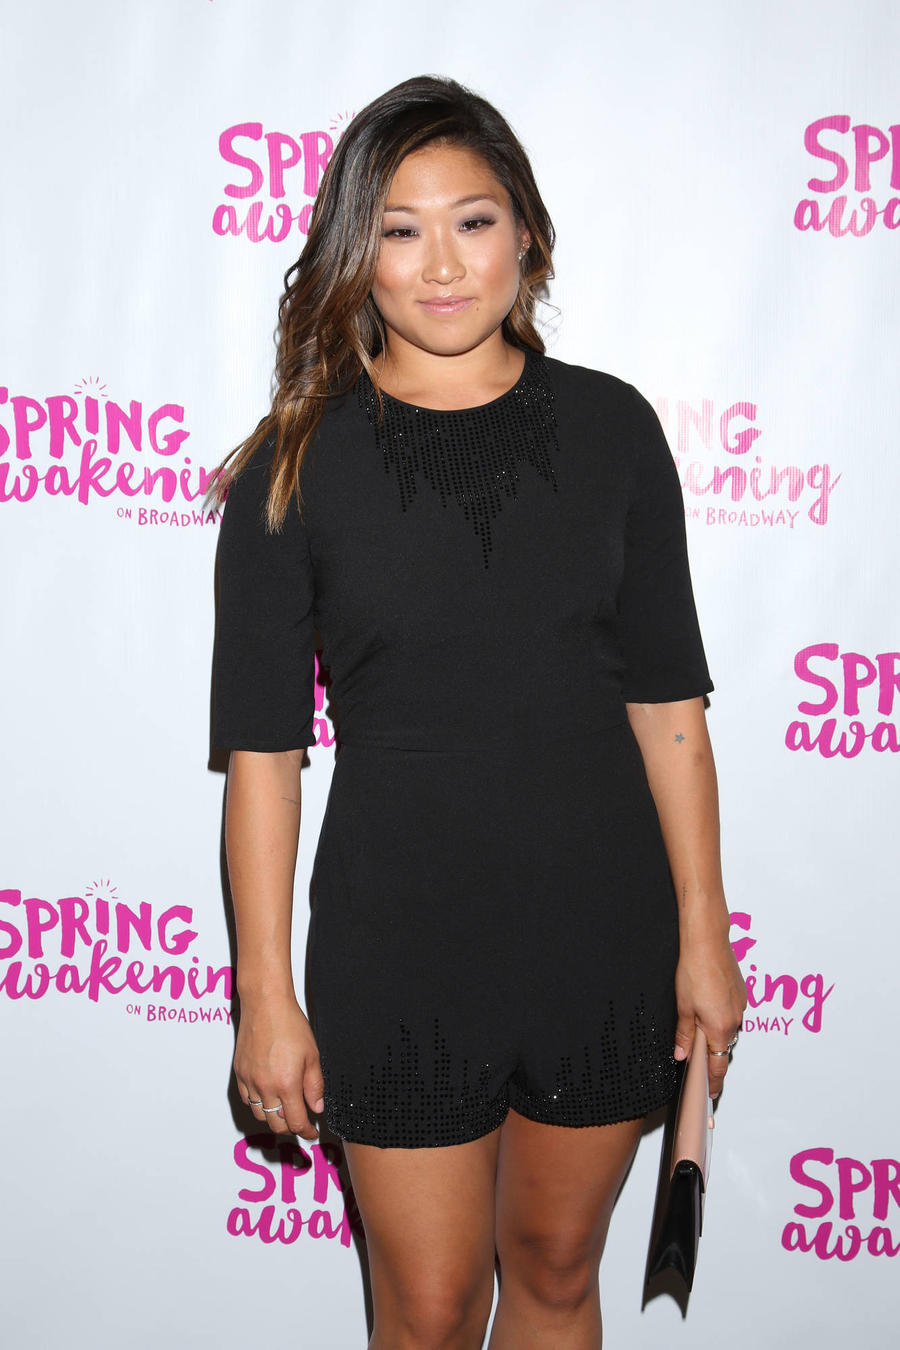 Jenna Ushkowitz Heading Back To Broadway